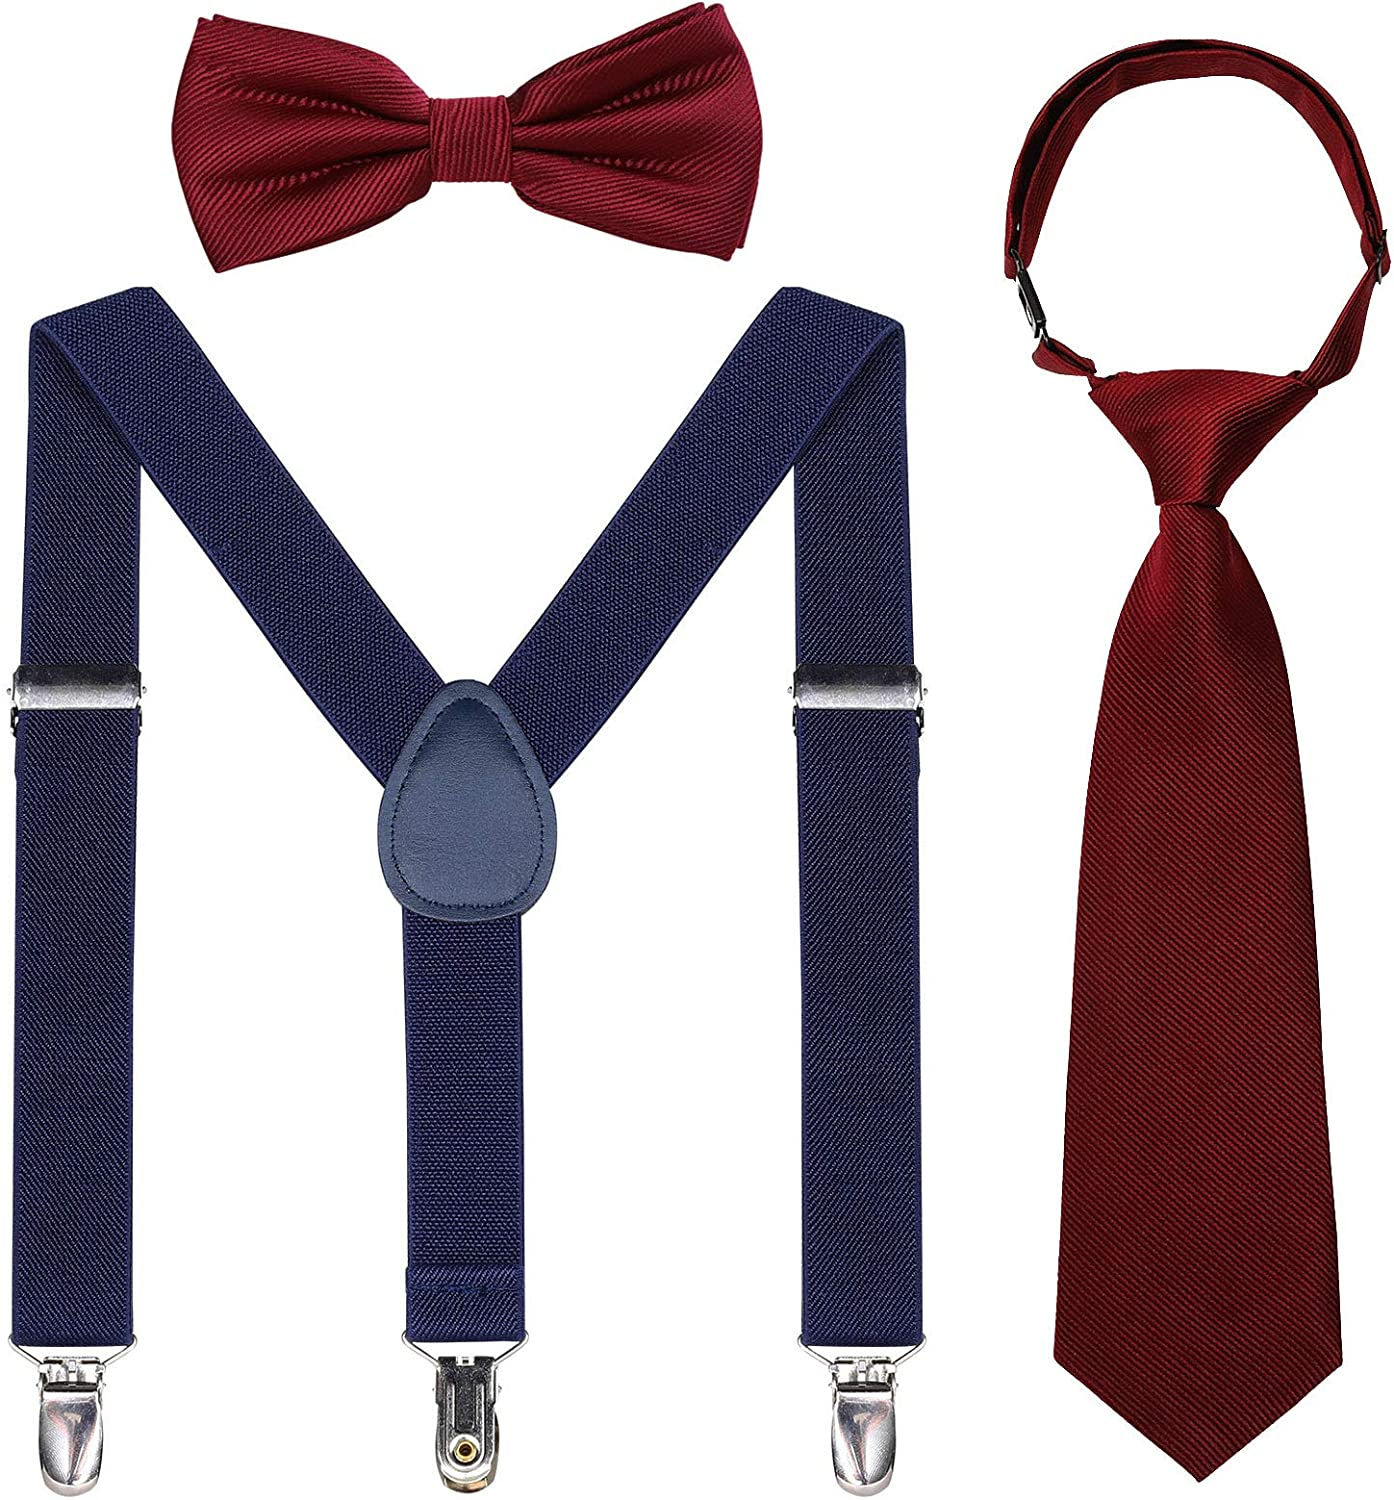 Suspenders For Men With Bowtie Set Boys Women Adults Adjustable Elastic Bow Tie